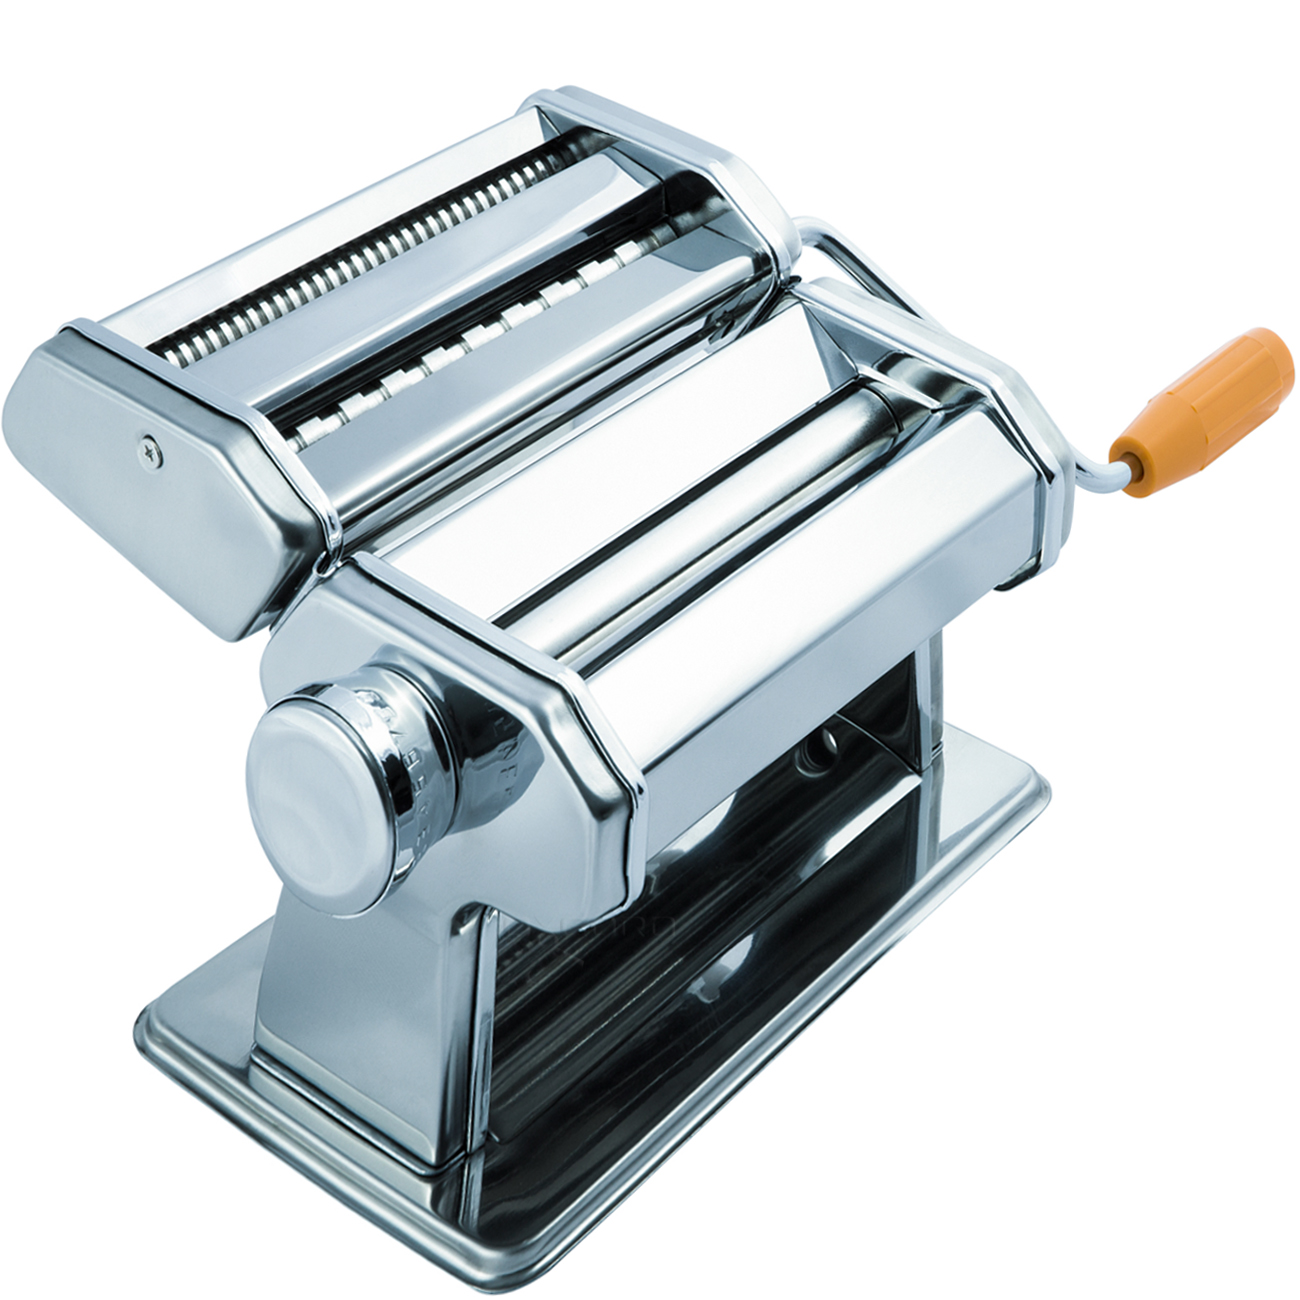 OxGord Pasta Maker Machine - Stainless Steel Roller for Fresh Spaghetti Fettuccine Noodle Hand Crank Cutter